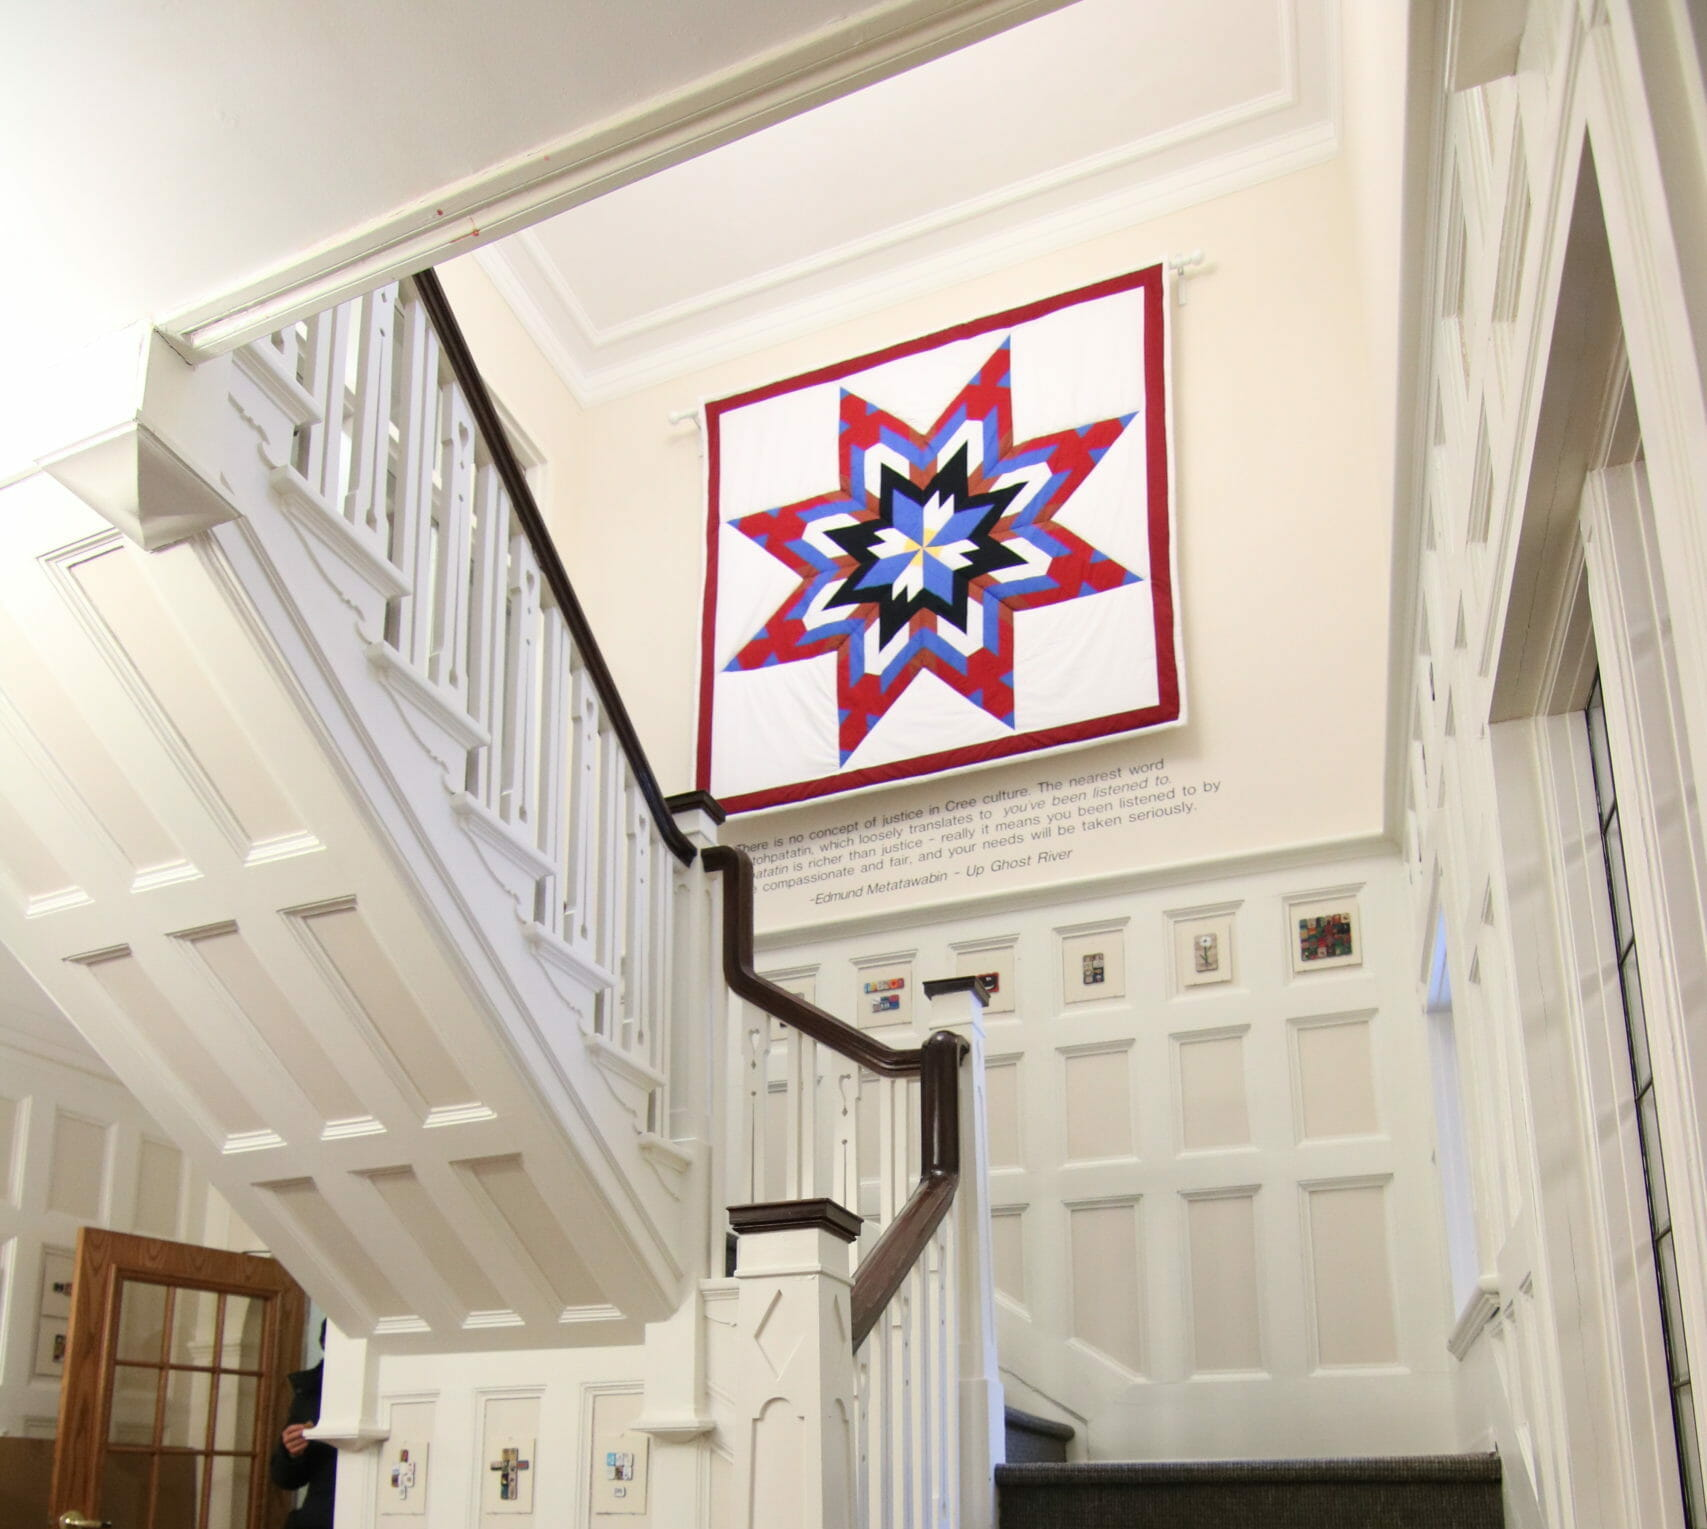 Star blanket hanging in staircase at NCTR building